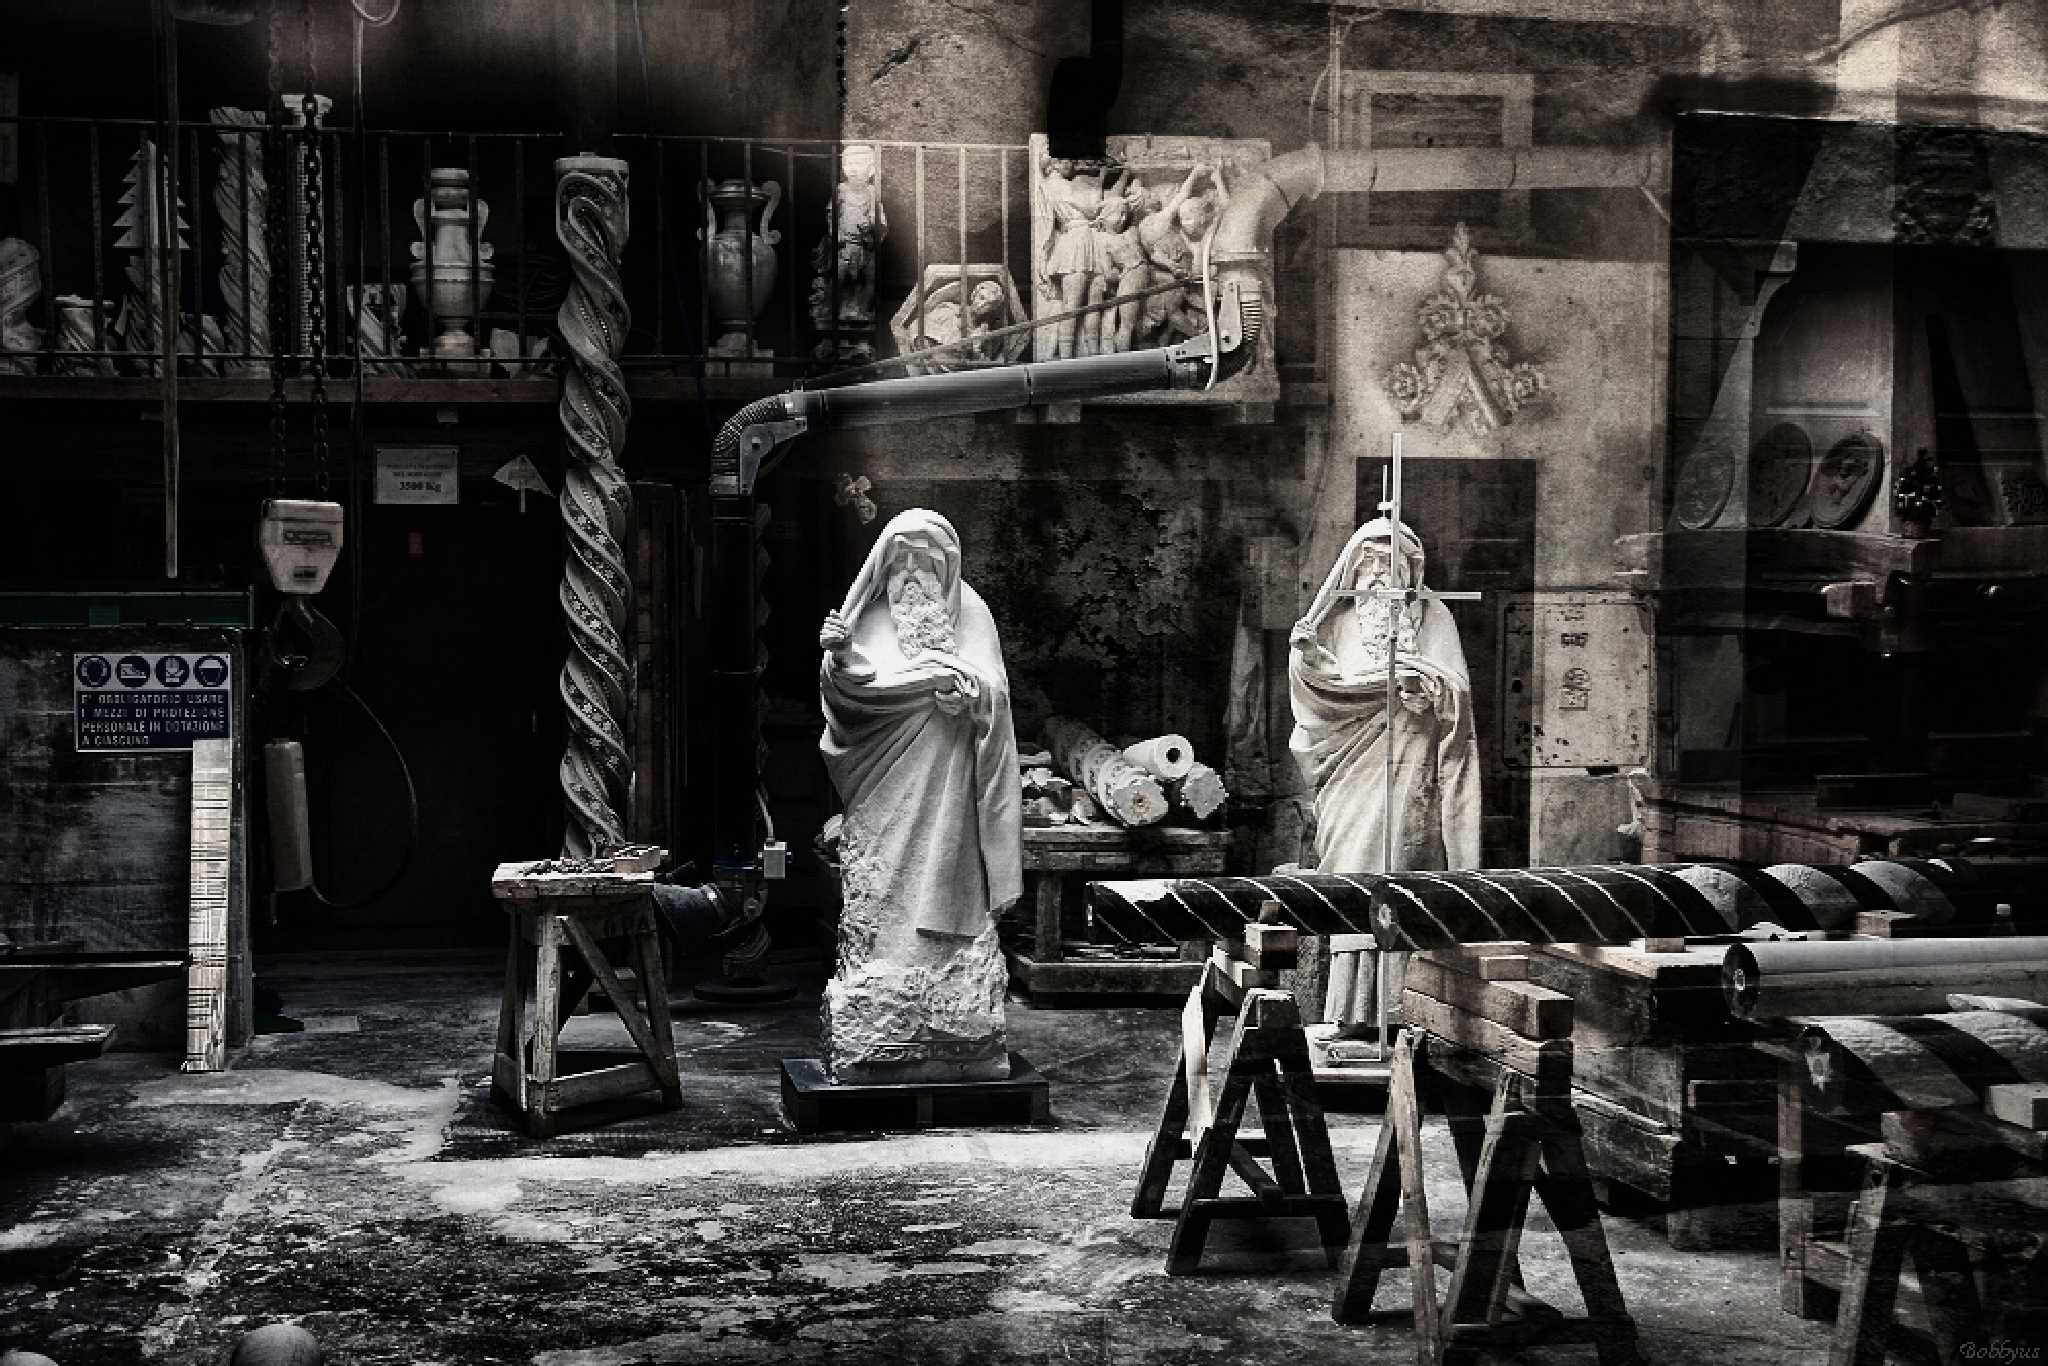 workshop of the sculptor by Bobbyus